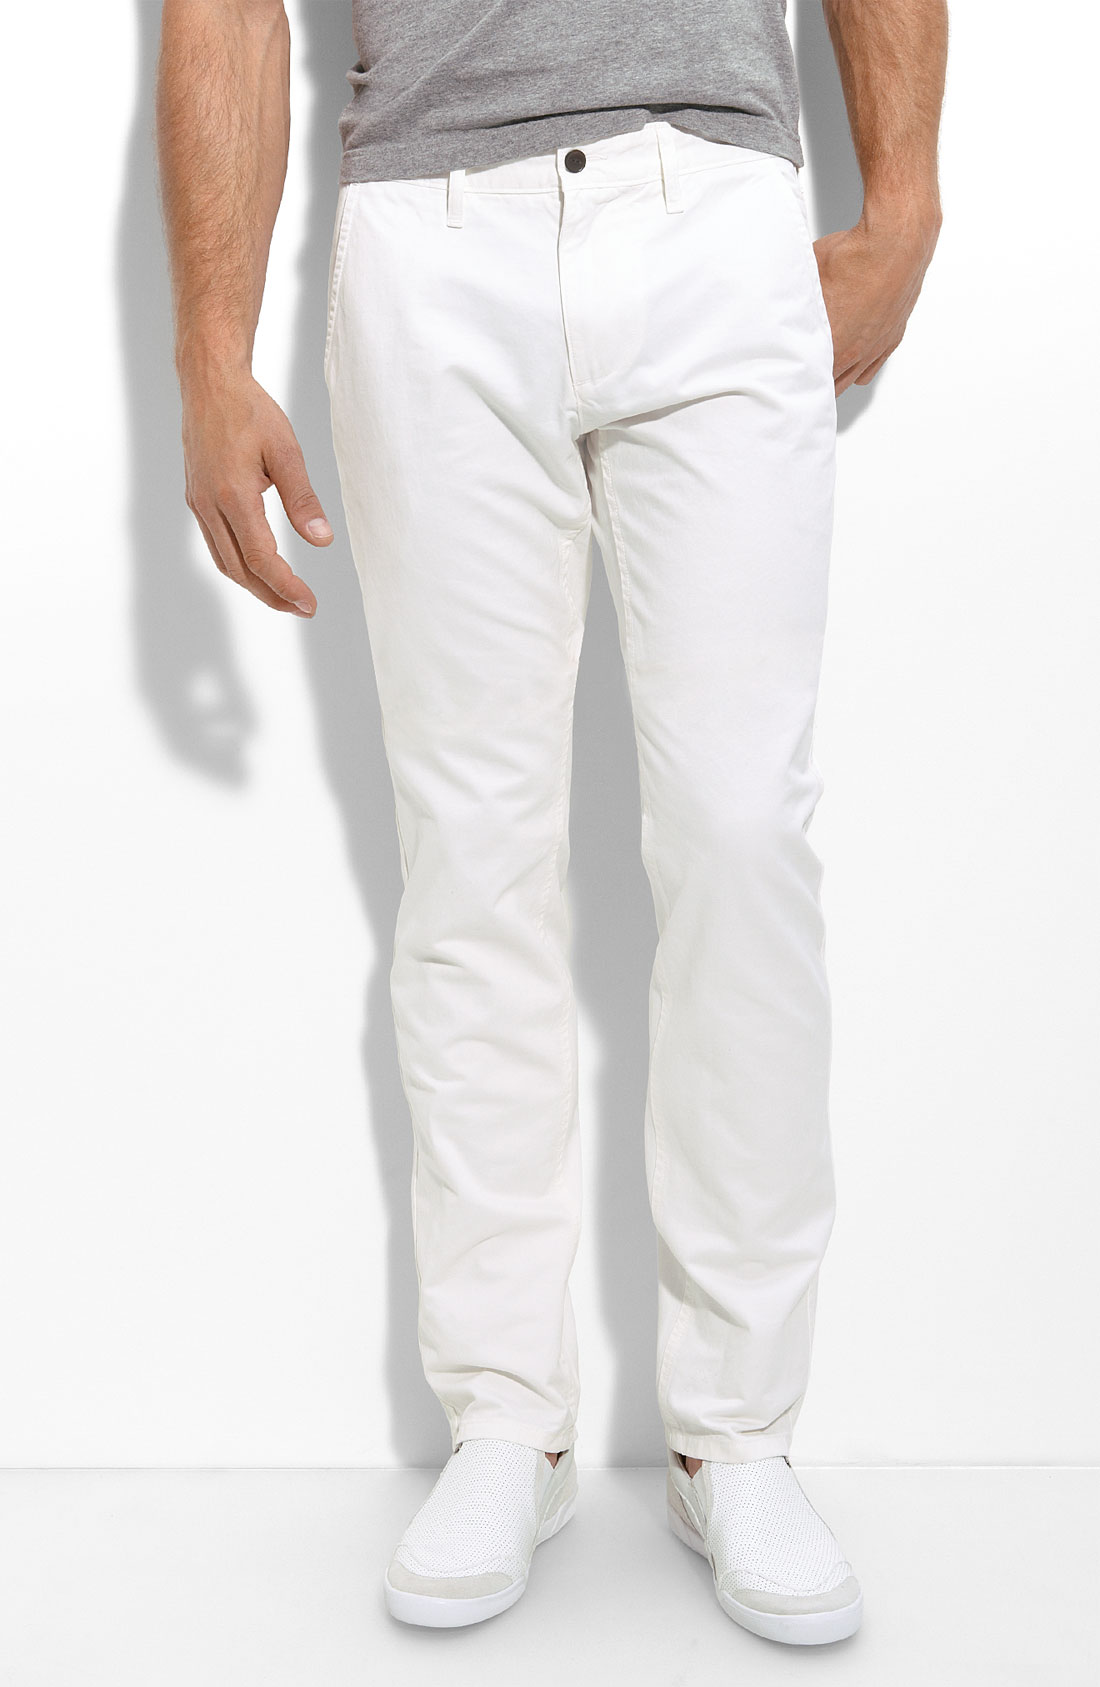 Elegant Must Have White Pants Outfit  Fashjourneycom